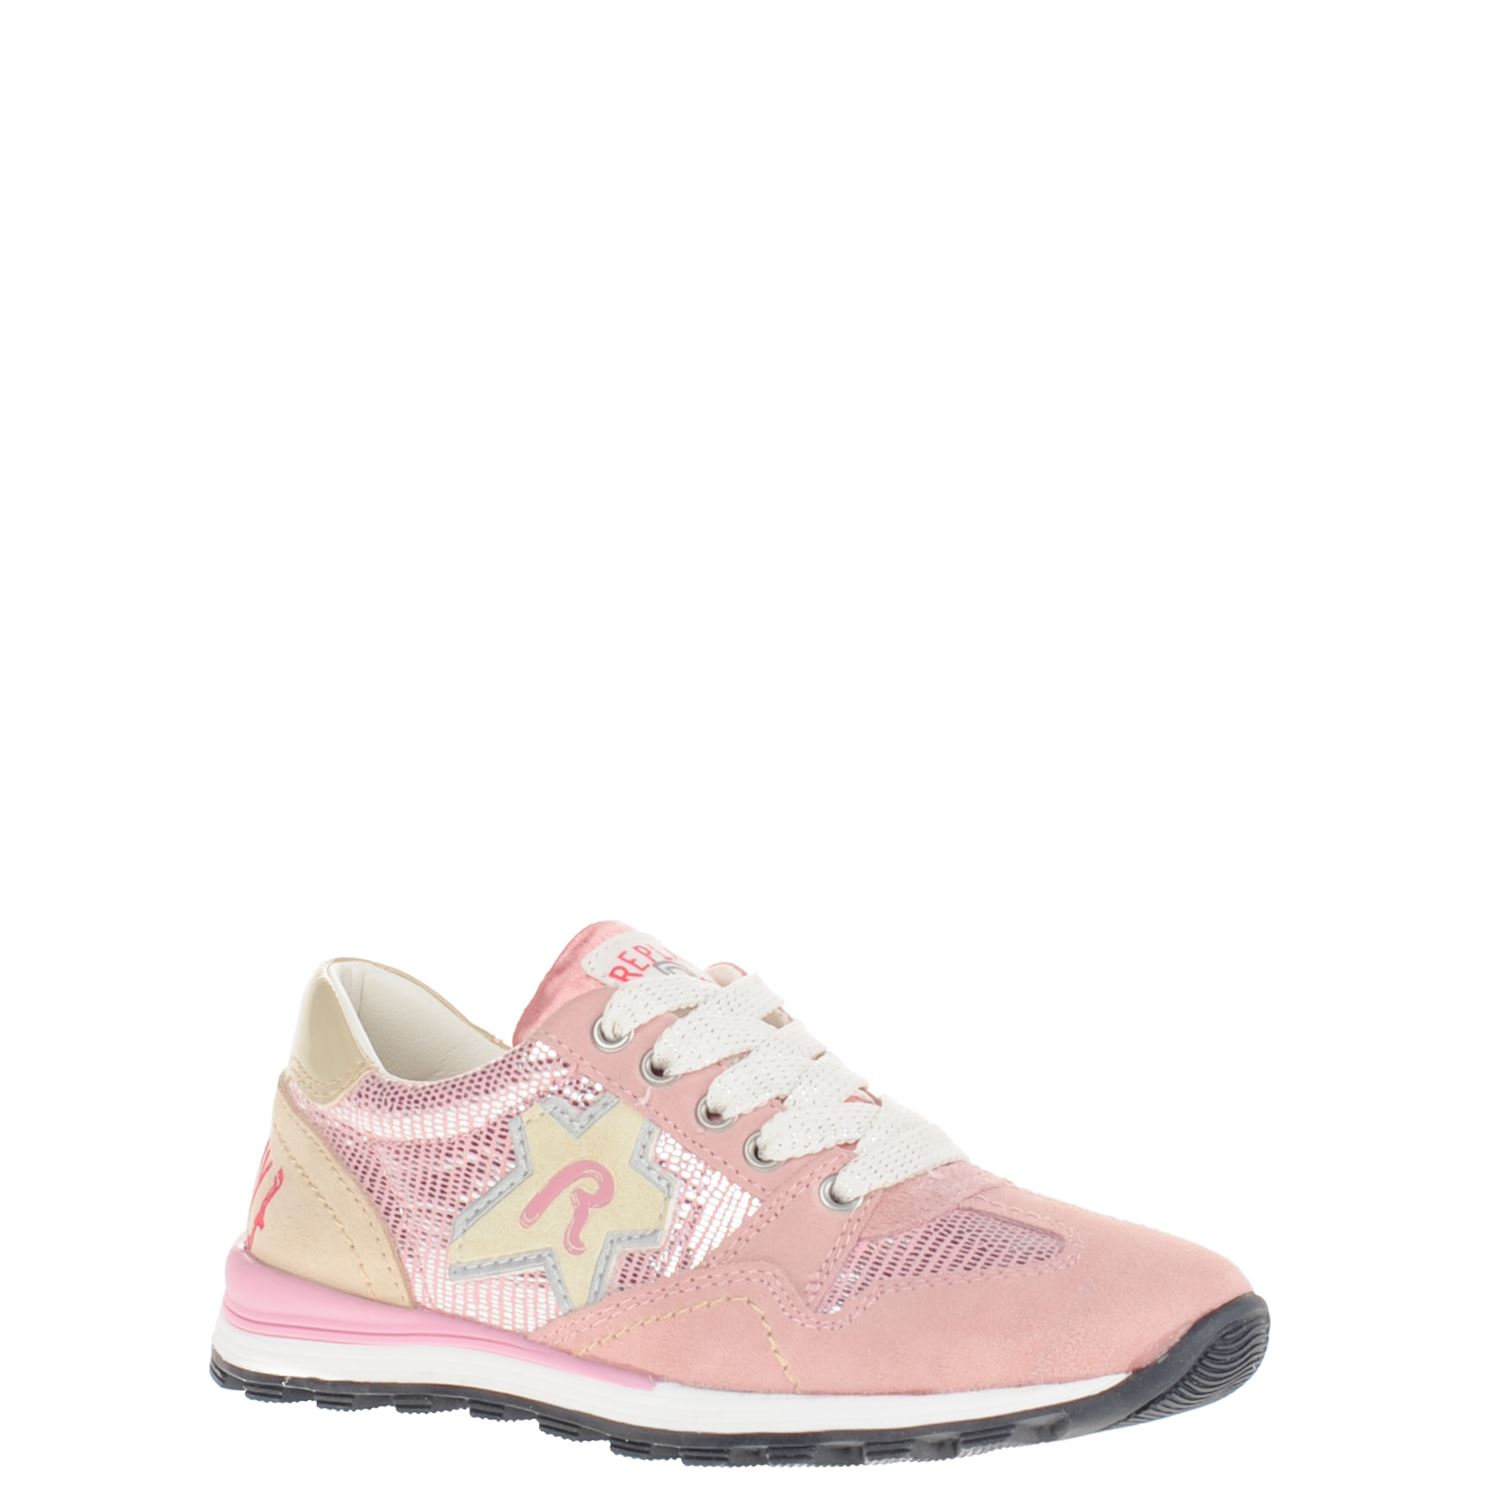 Chaussures Replay Rose Pour Les Hommes WSOGteJ